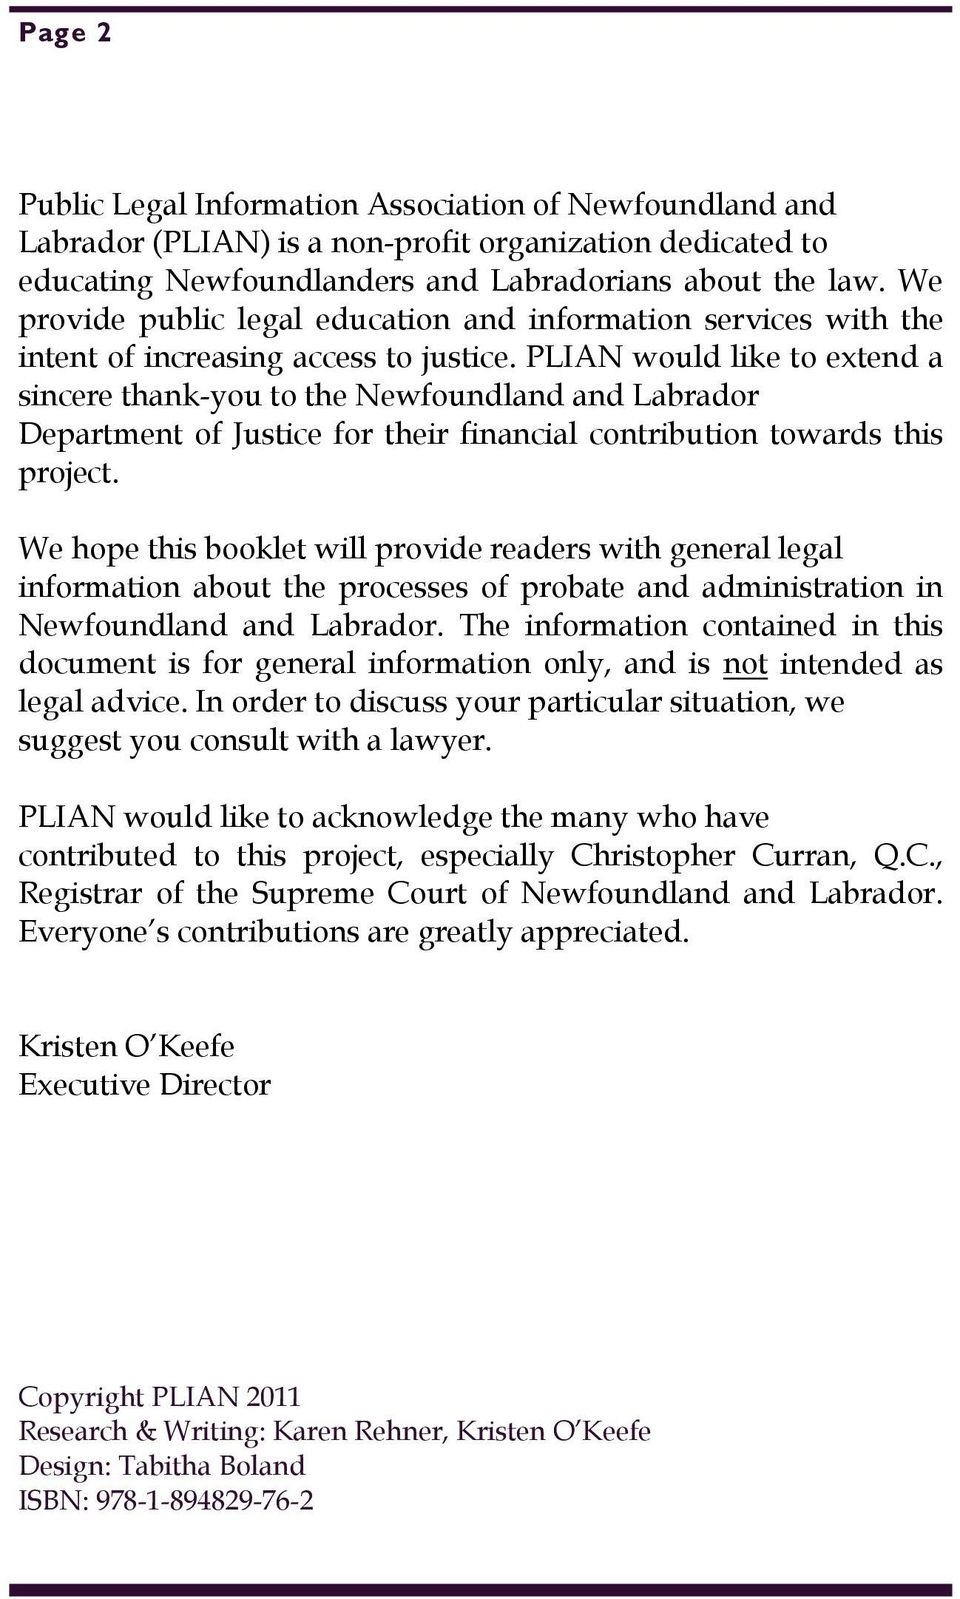 PLIAN would like to extend a sincere thank-you to the Newfoundland and Labrador Department of Justice for their financial contribution towards this project.